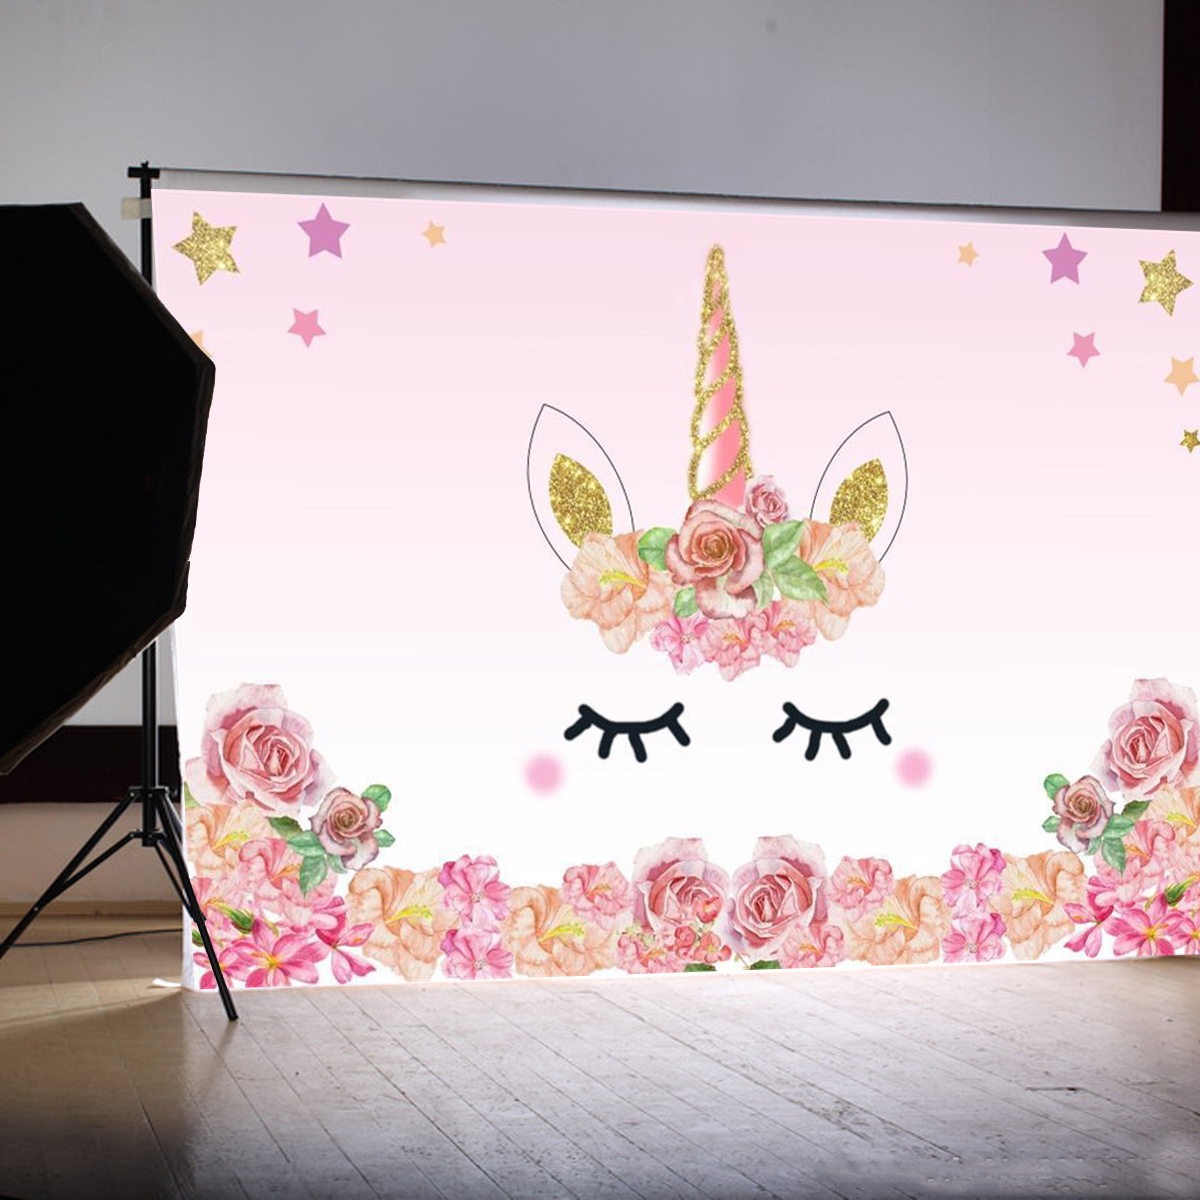 5x3FT 7x5FT Pink Unicorn Star Flower Birthday Theme Photography Backdrop Studio Prop Background